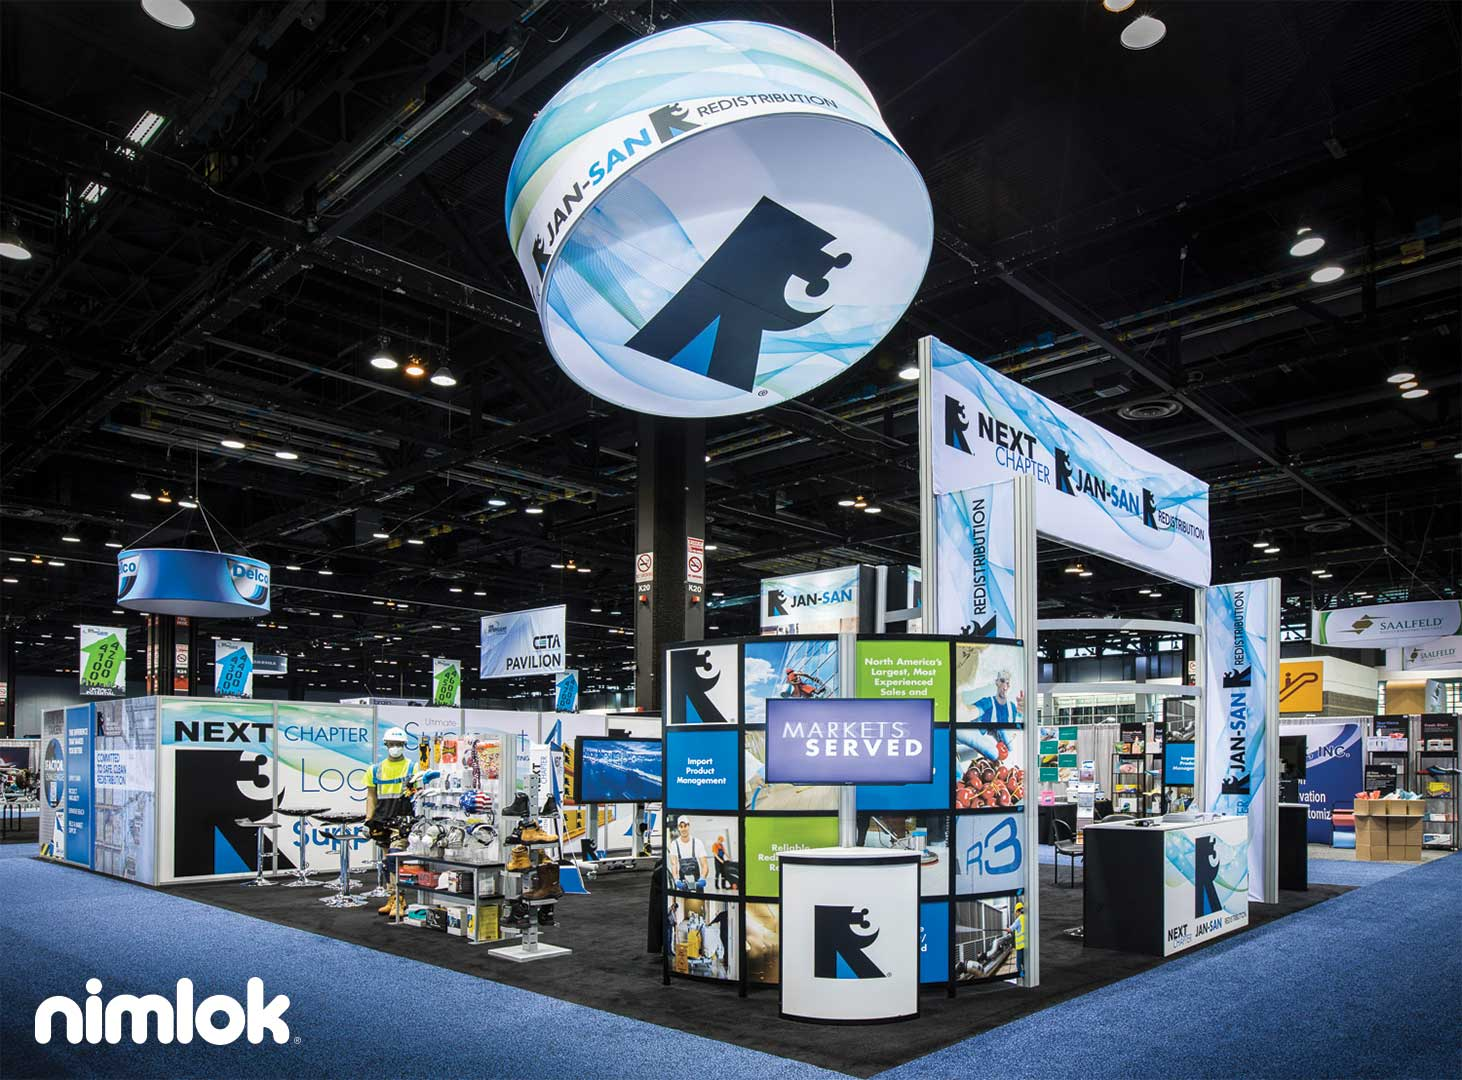 R3 Distribution's reconfigurable exhibit